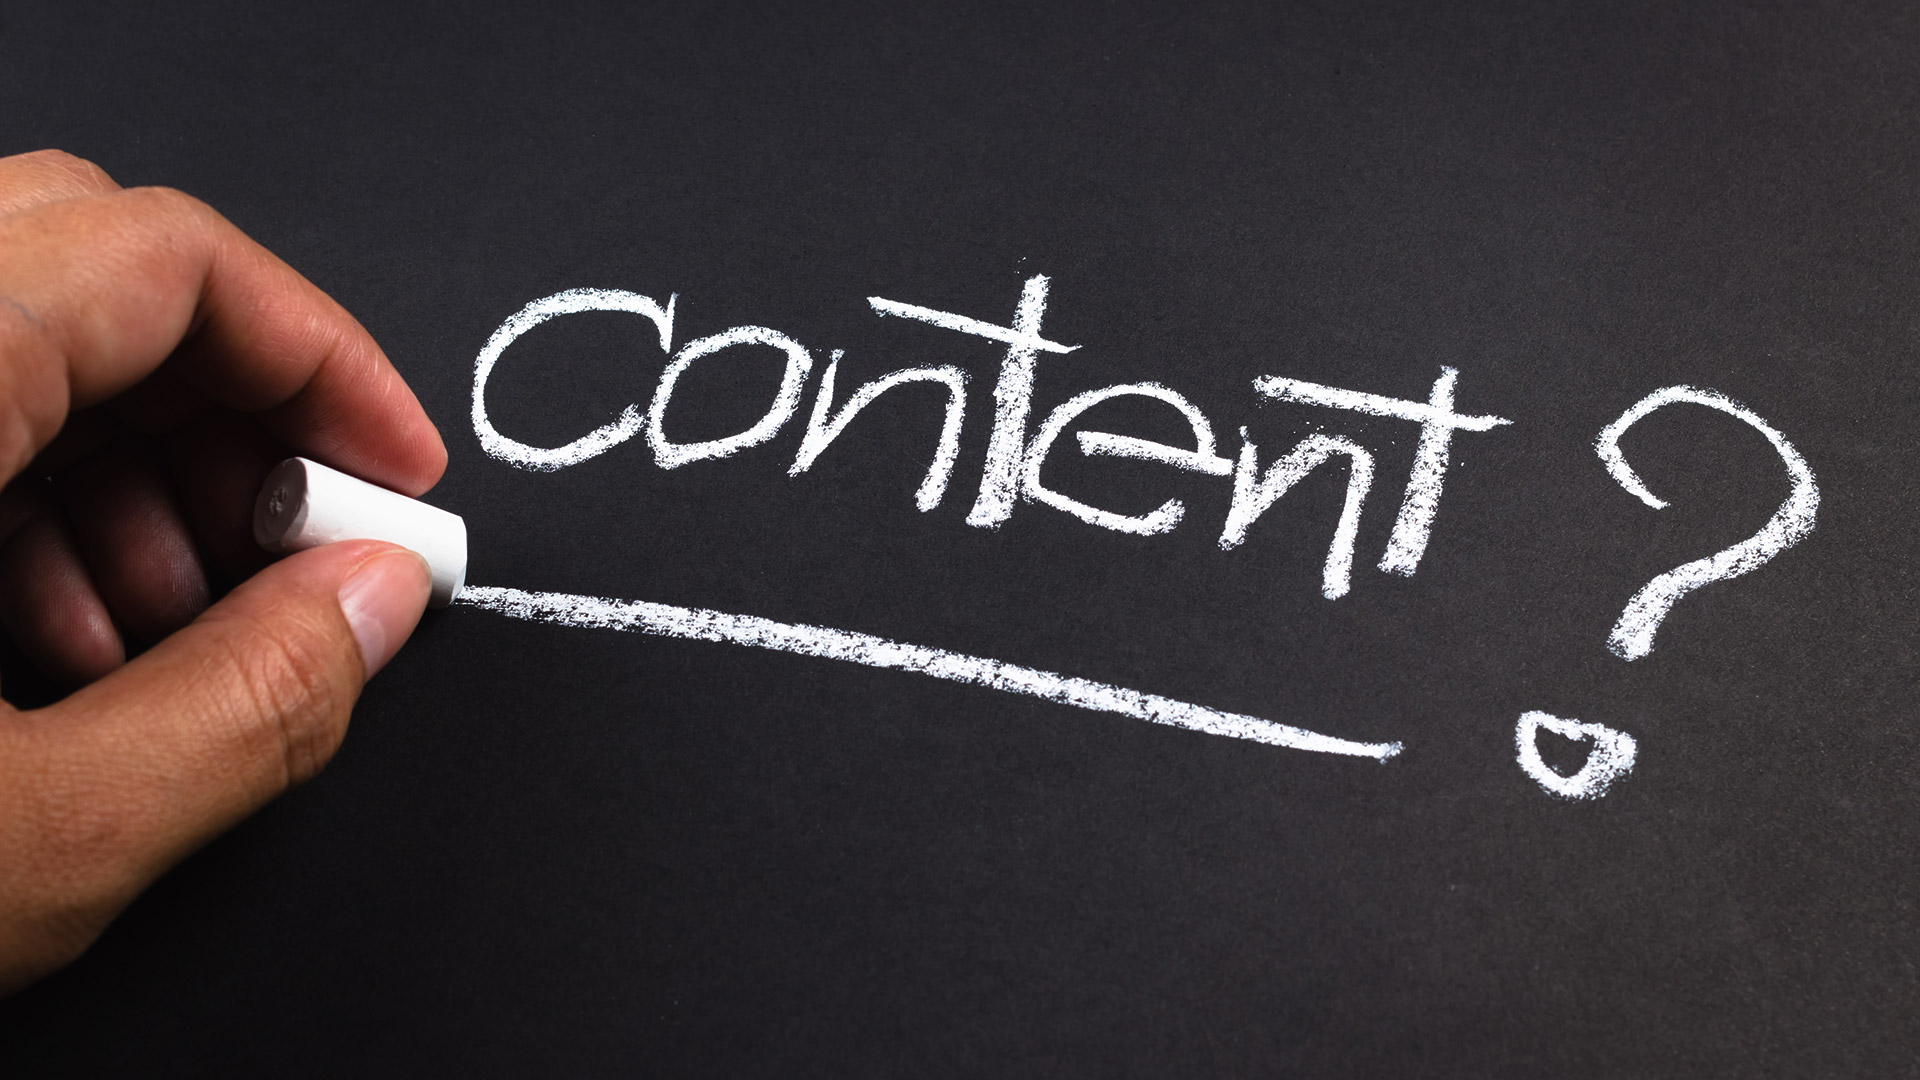 5 main stages to producing great content